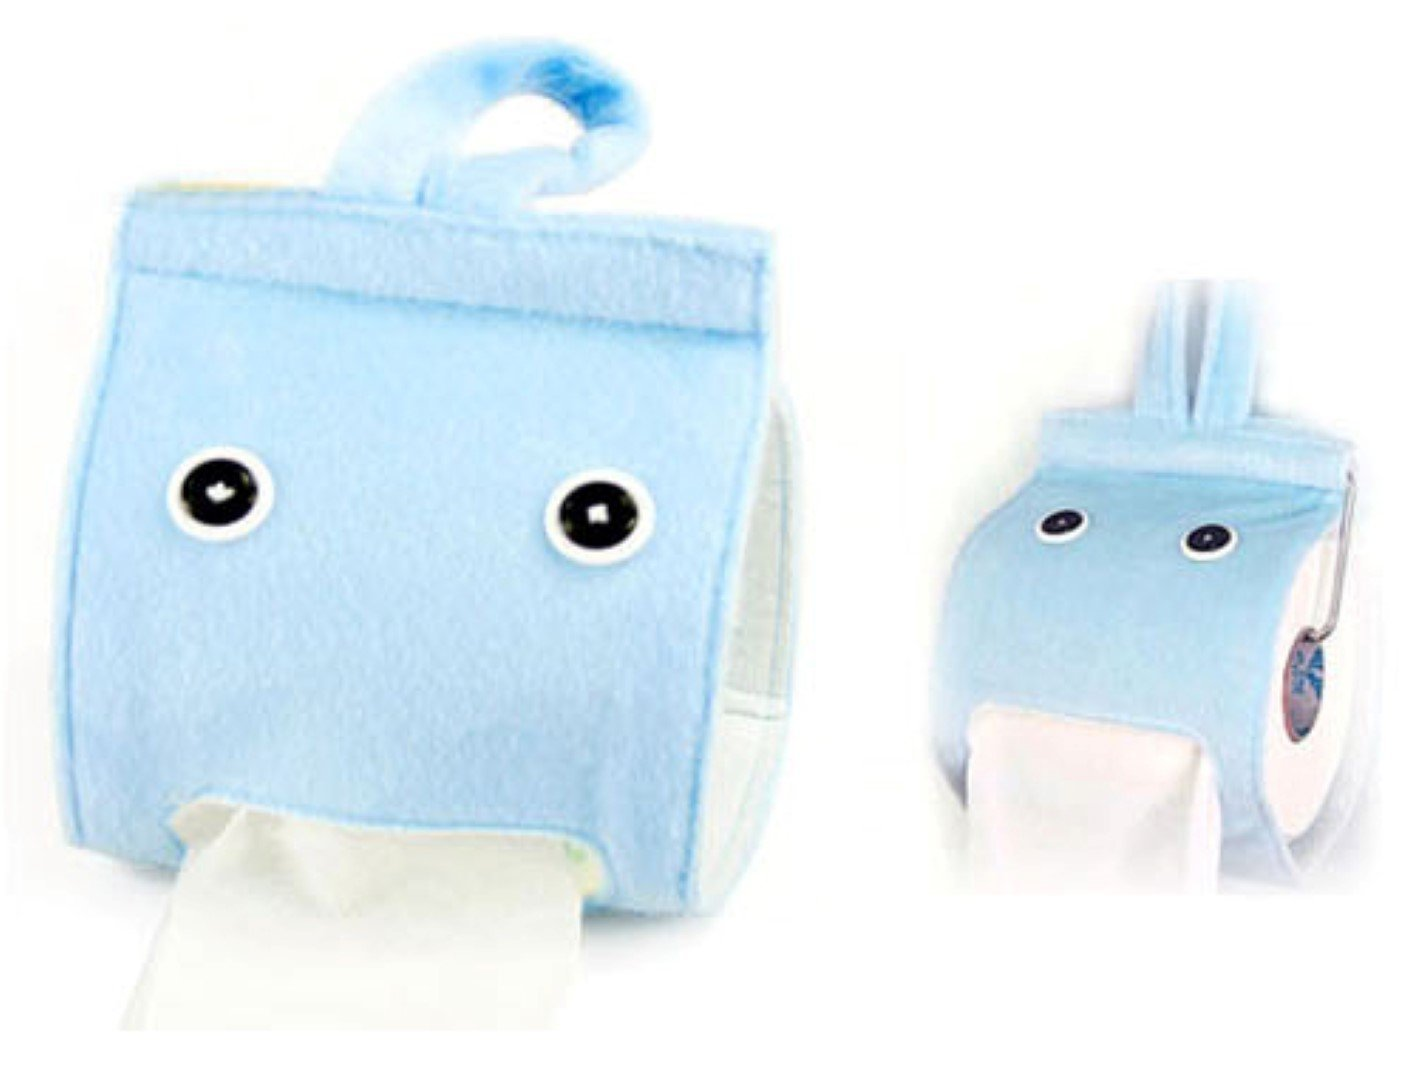 [Blue] Toilet Paper Roll Tissue Box Cartoon Paper Towel Tube Tissue Cover Paper Holder Hanging Tissue Holder Paper Holder Dispenser Napkin Box Paper Tissue Tray Paper Container for Home Car Bathroom